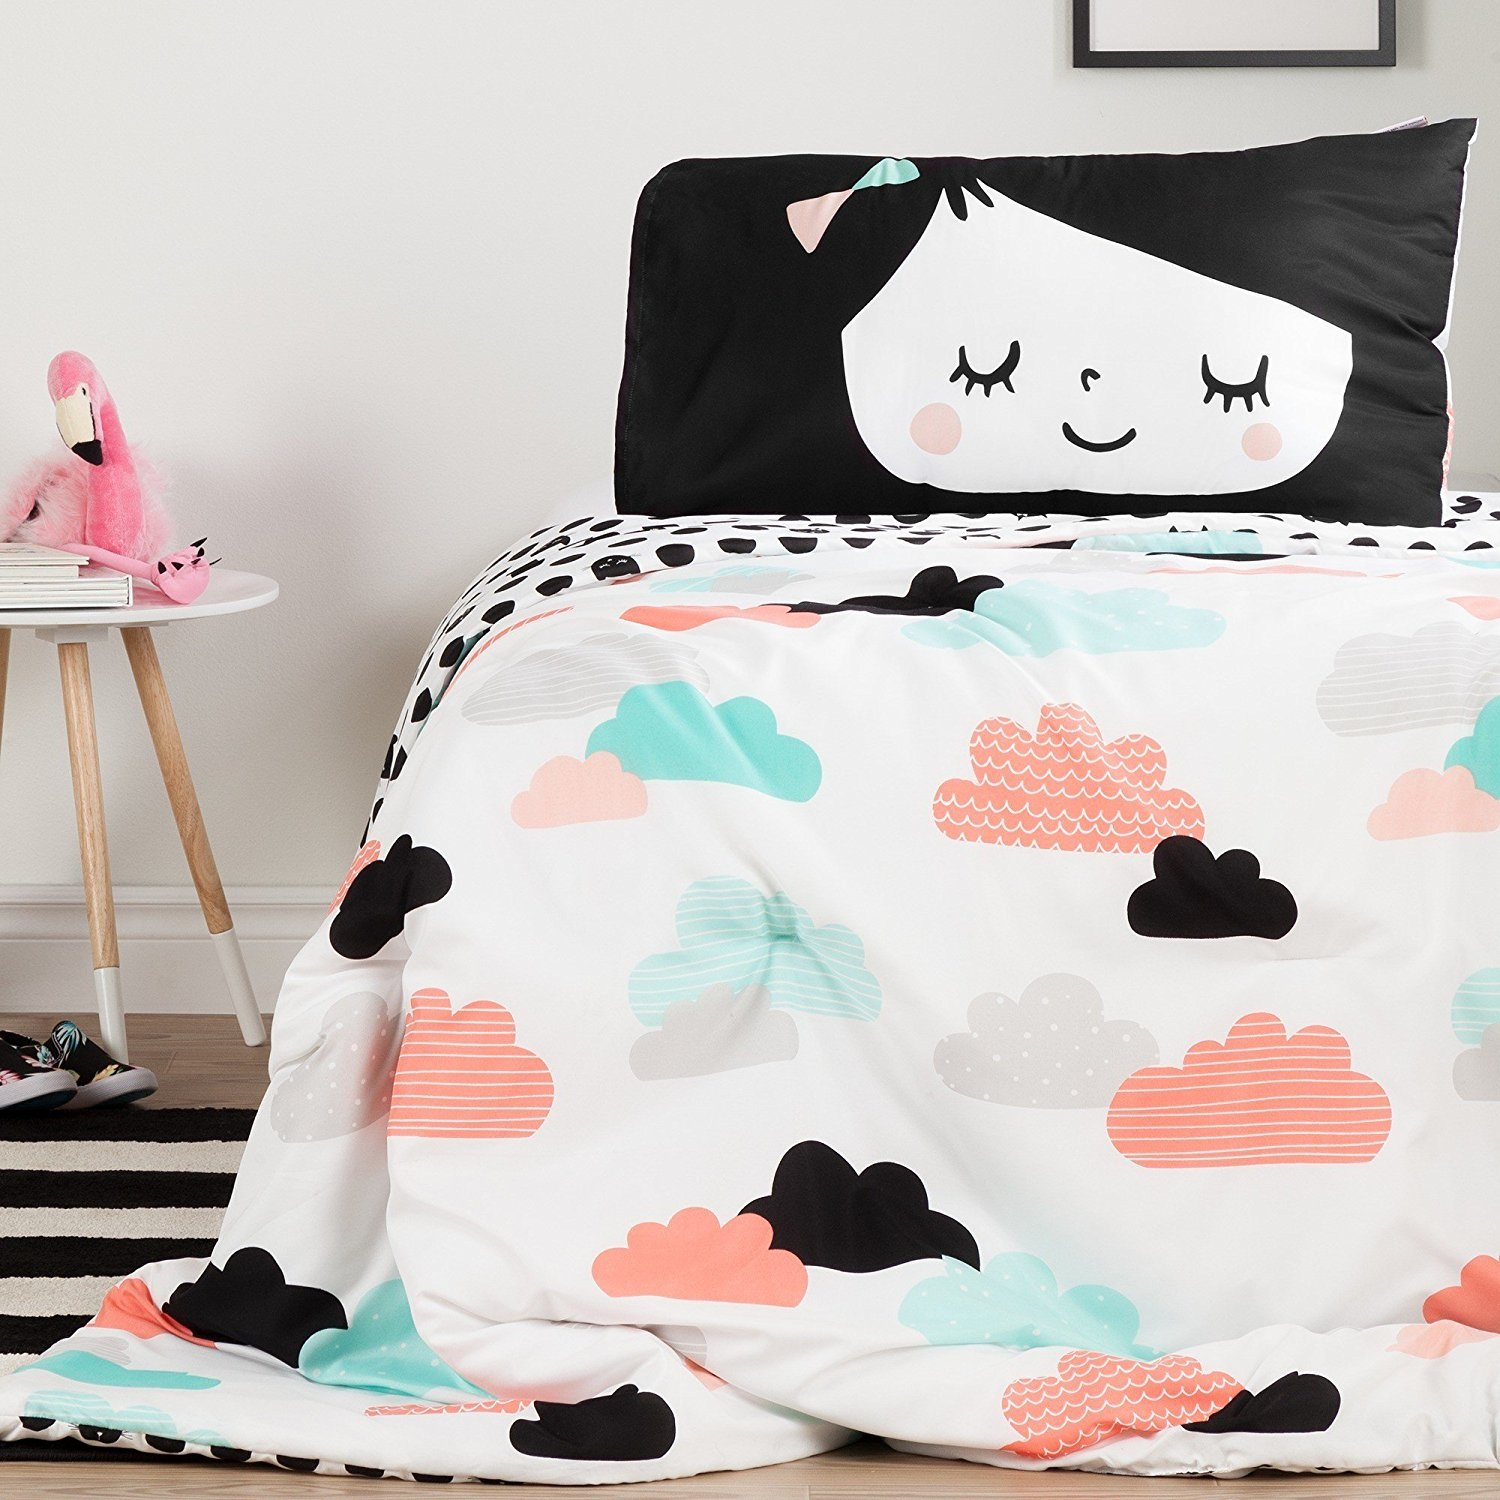 LO 2 Piece Girls Black Pink White Night Garden Cloud Comforter Set Twin, Sky Blue Dark Black Geometric Motif Design Teen Themed Kids Bedding For Bedroom Casual Colorful Contemporary, Polyester